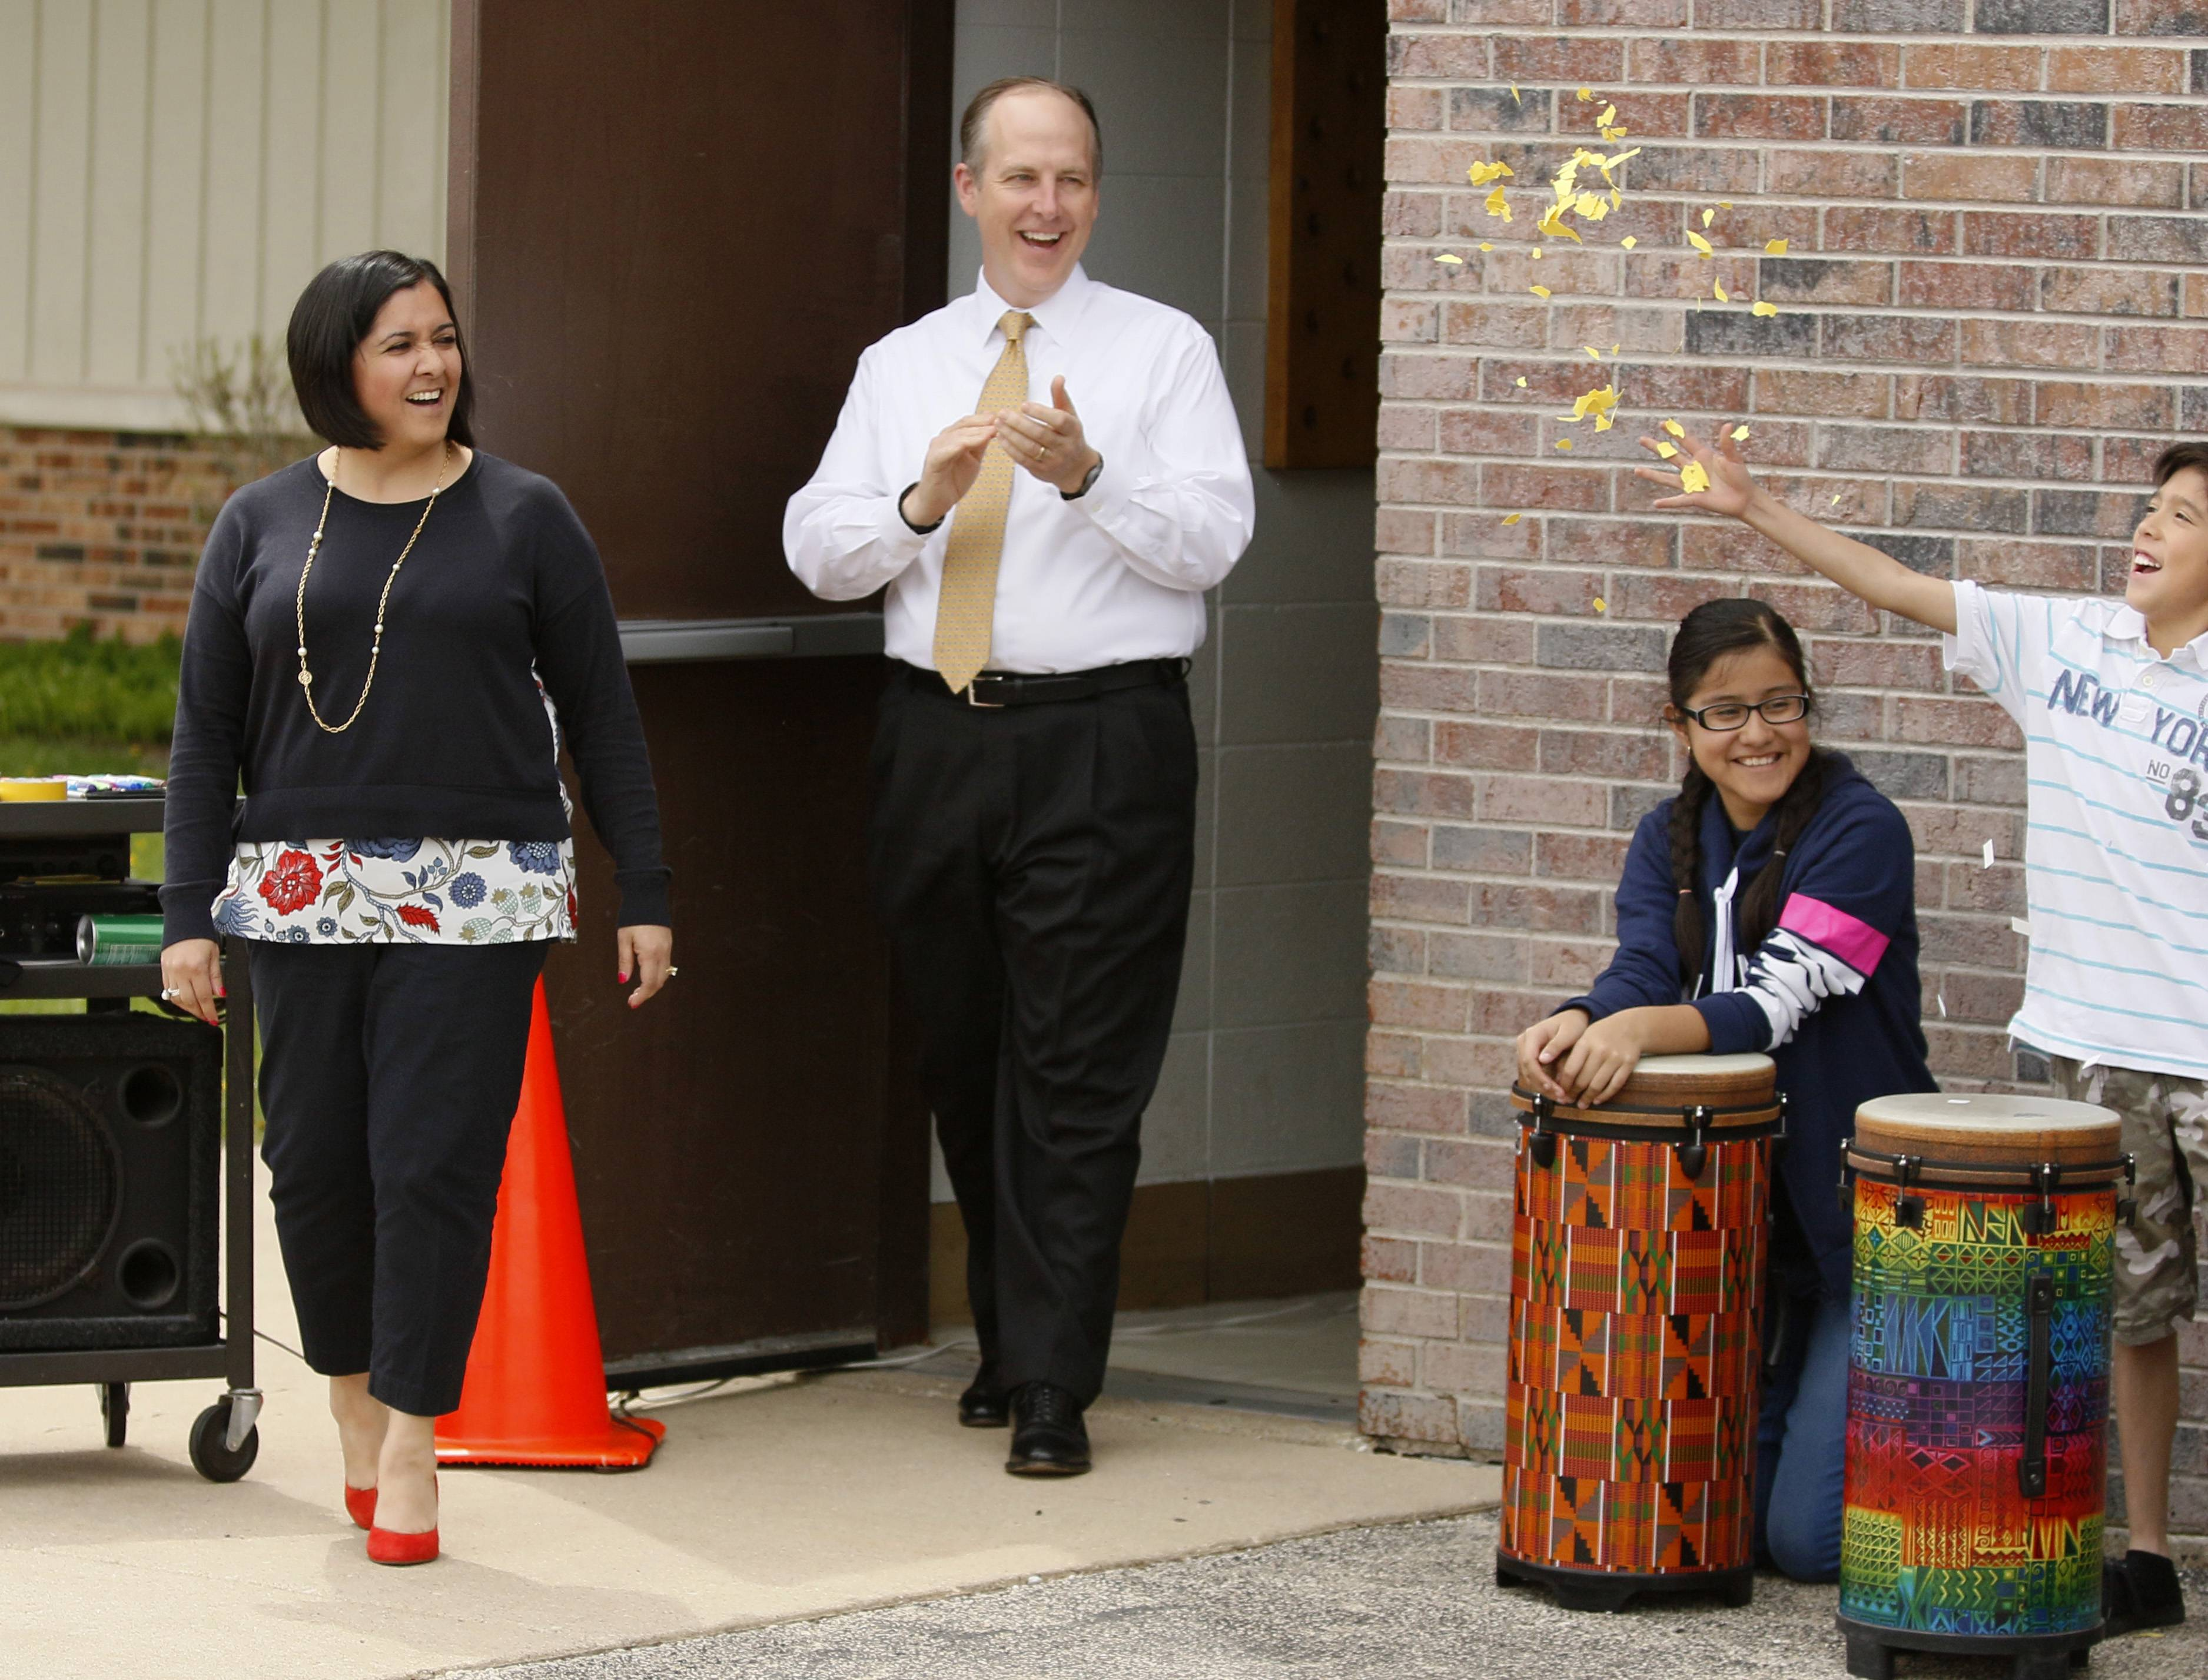 Superintendent Charles Johns, center, is leaving West Chicago Elementary District 33 at the end of the school year to serve as the top administrator in Glenbrook High School District 225.